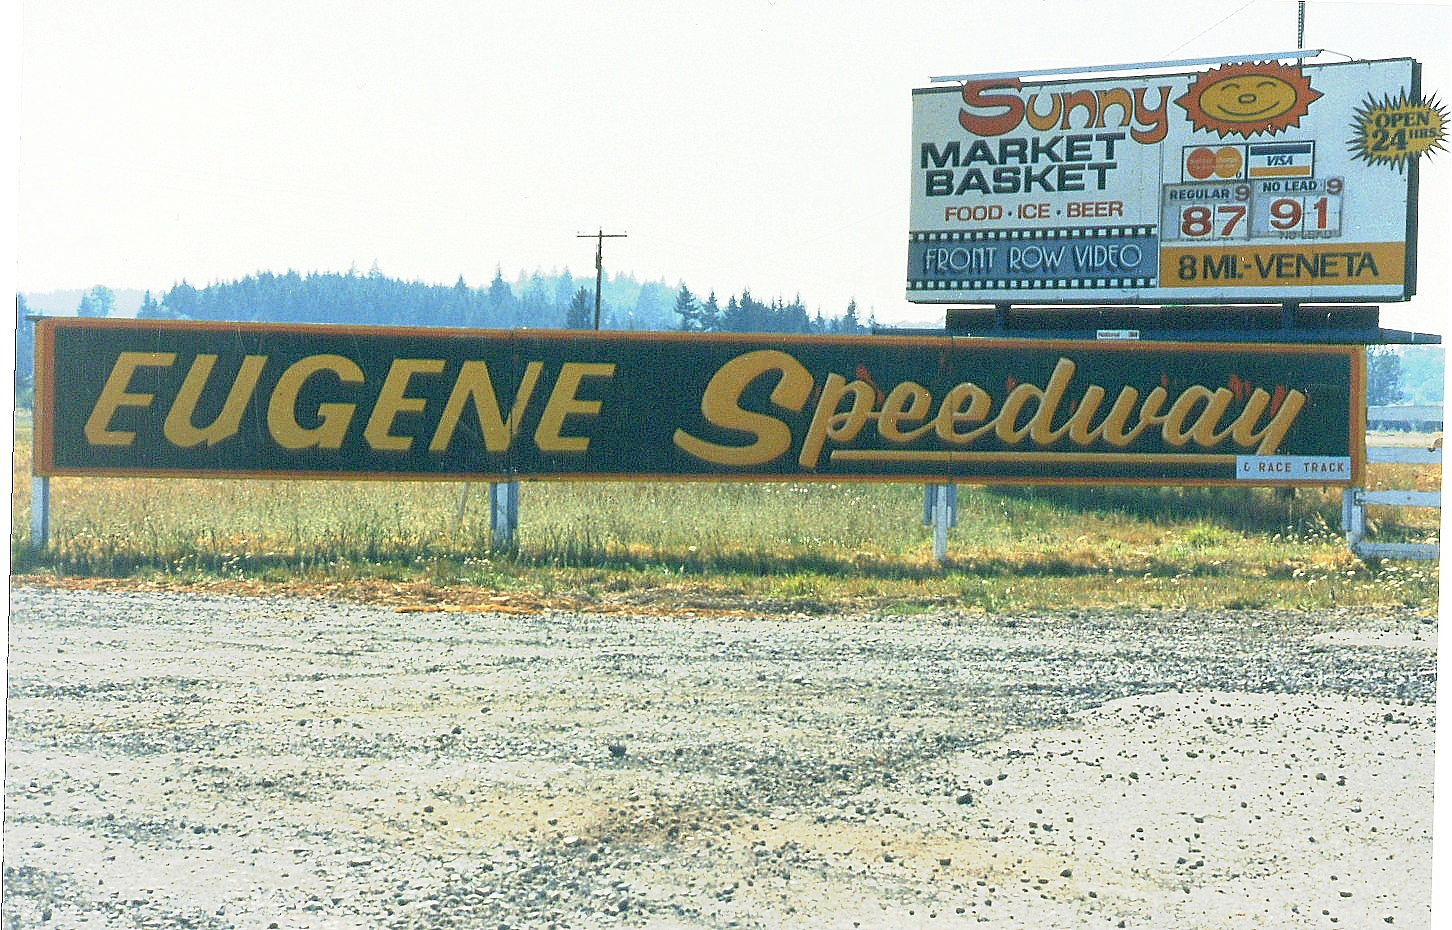 The entry to Eugene Speedway